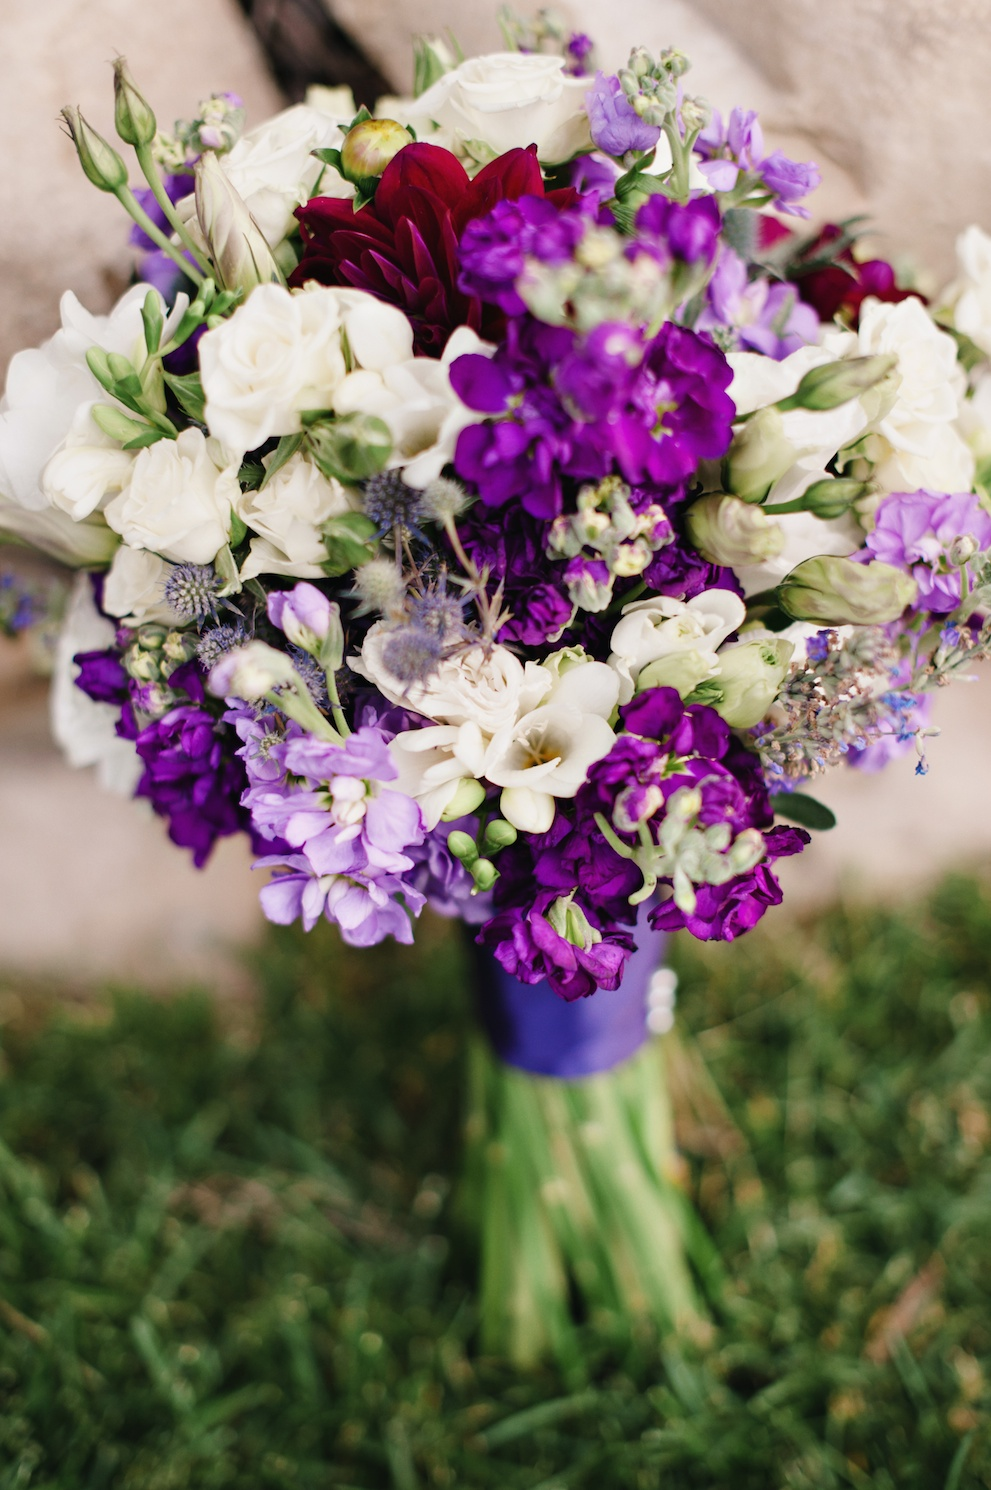 purple white wedding flowers bouquet utah florist calie rose Sundance resort purple wedding mikki platt photography